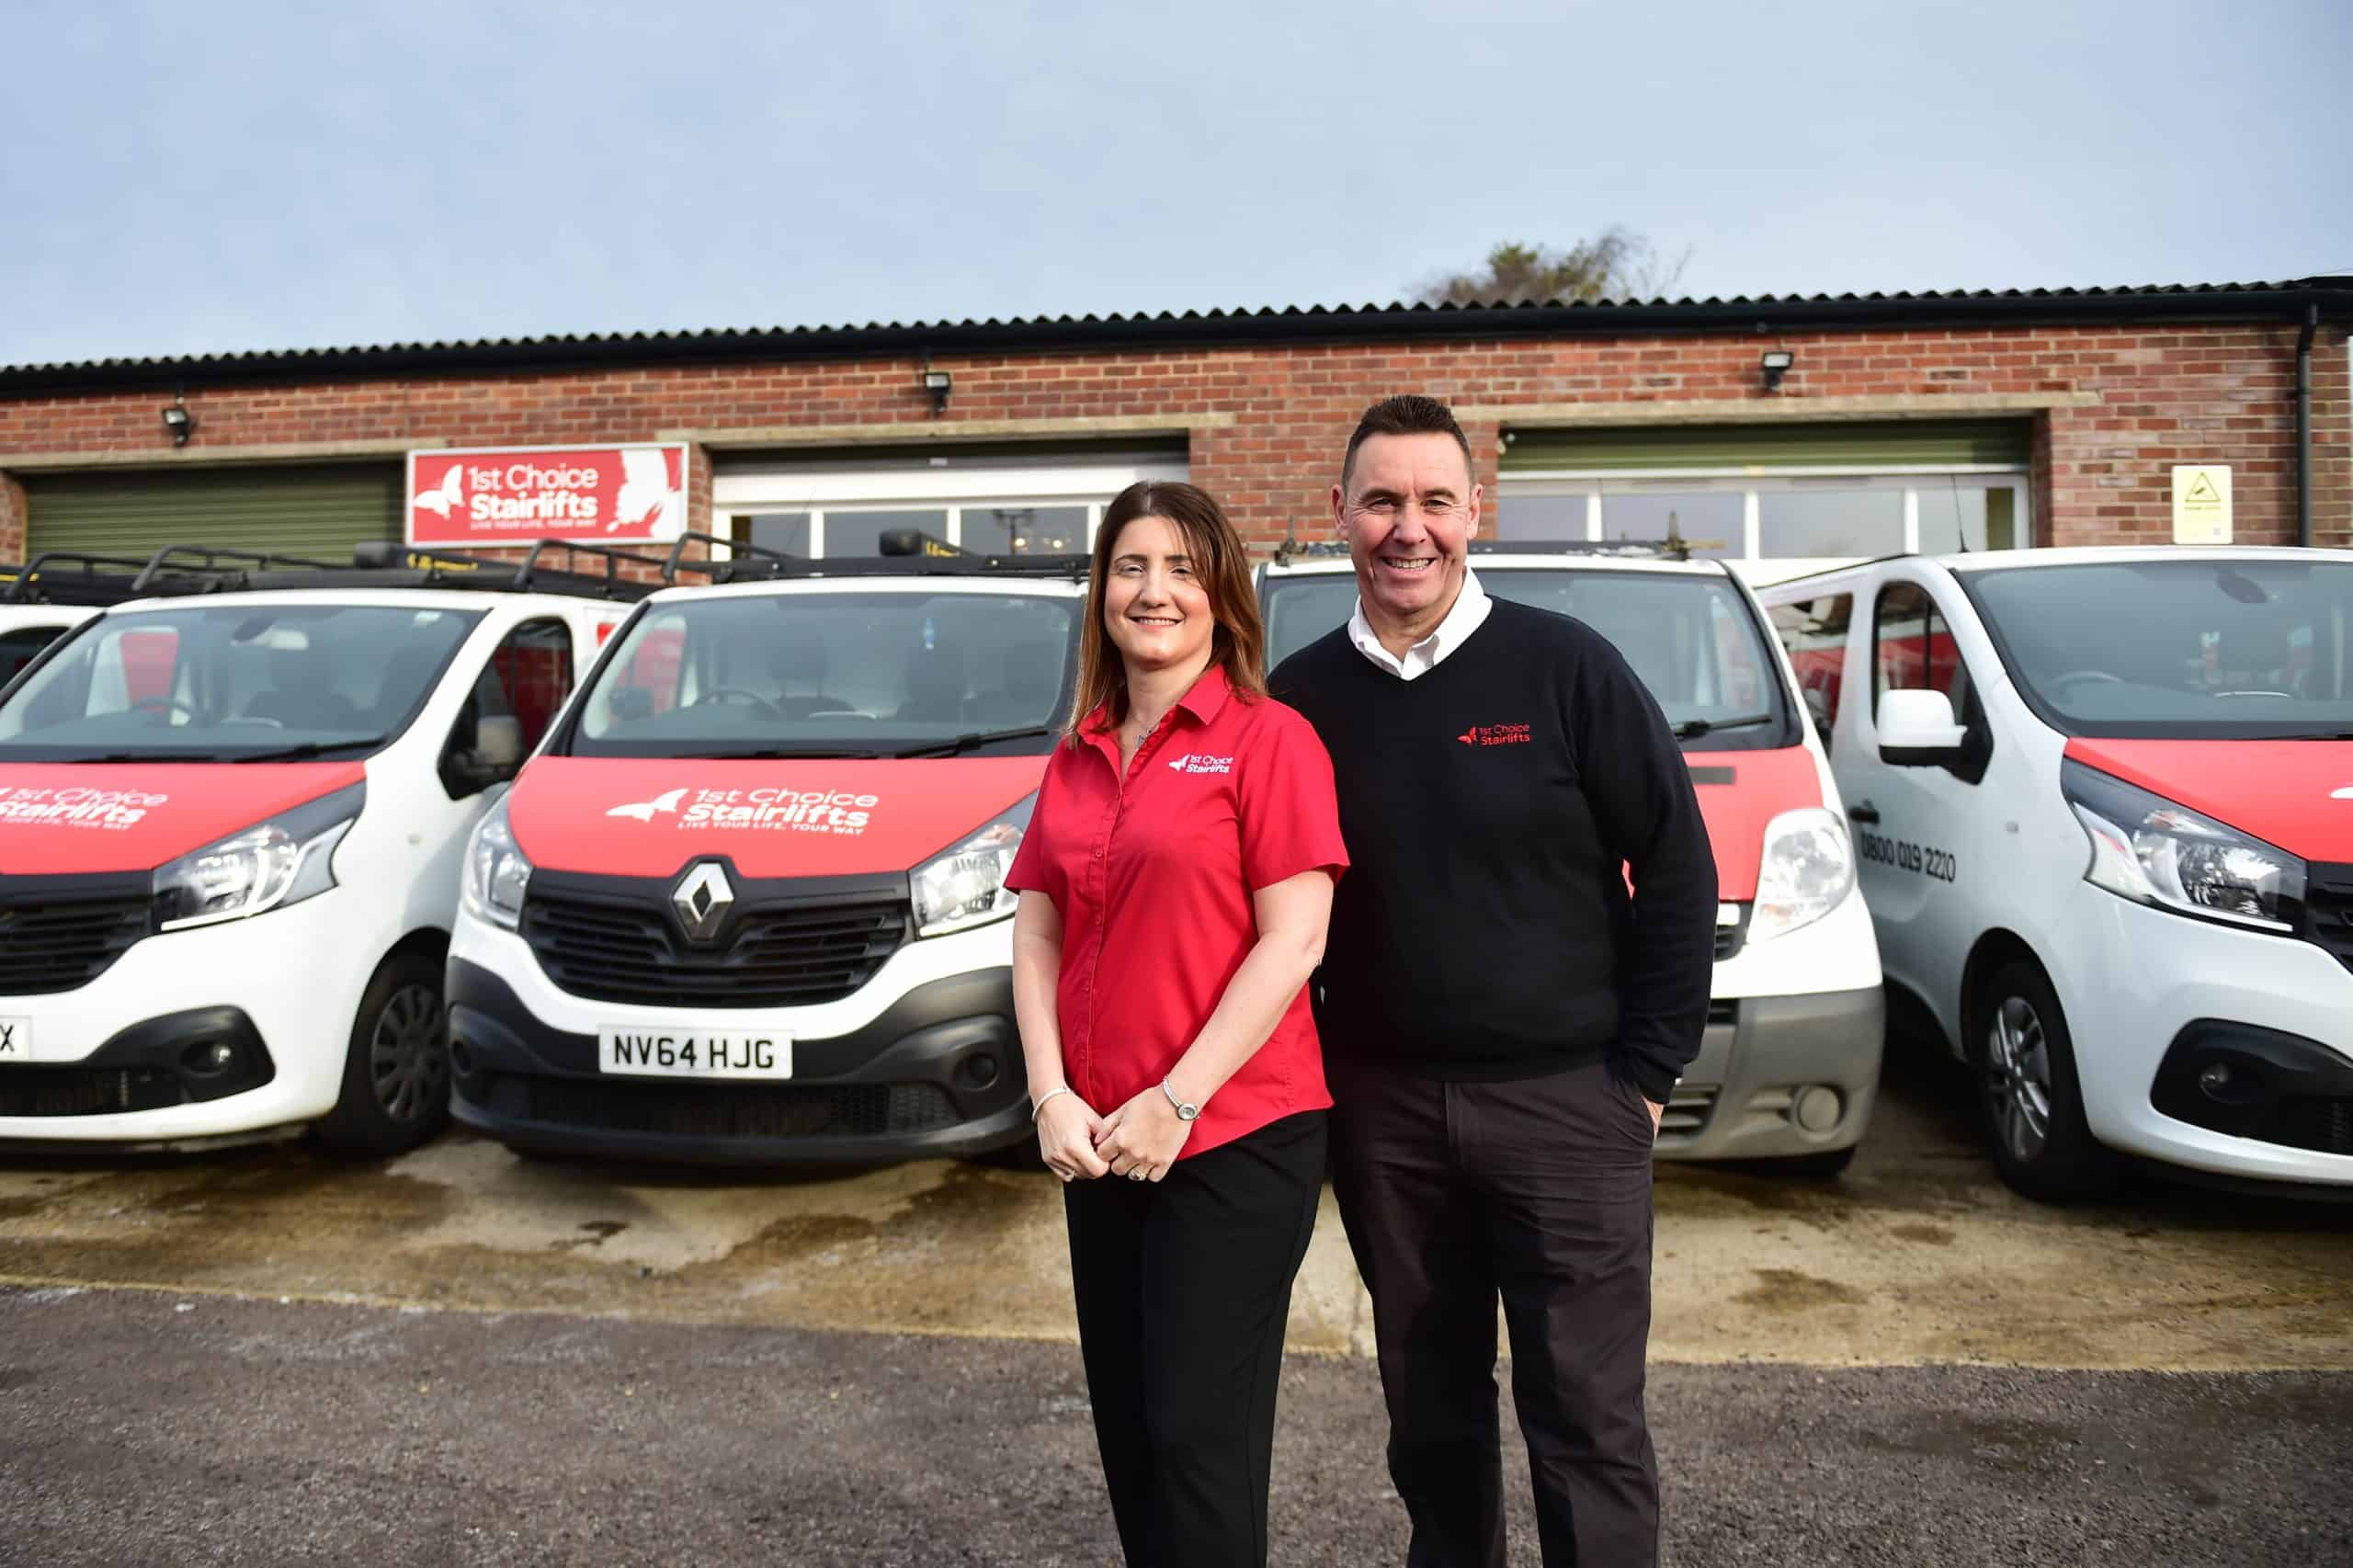 1st Choice Stairlifts Company Directors with vans